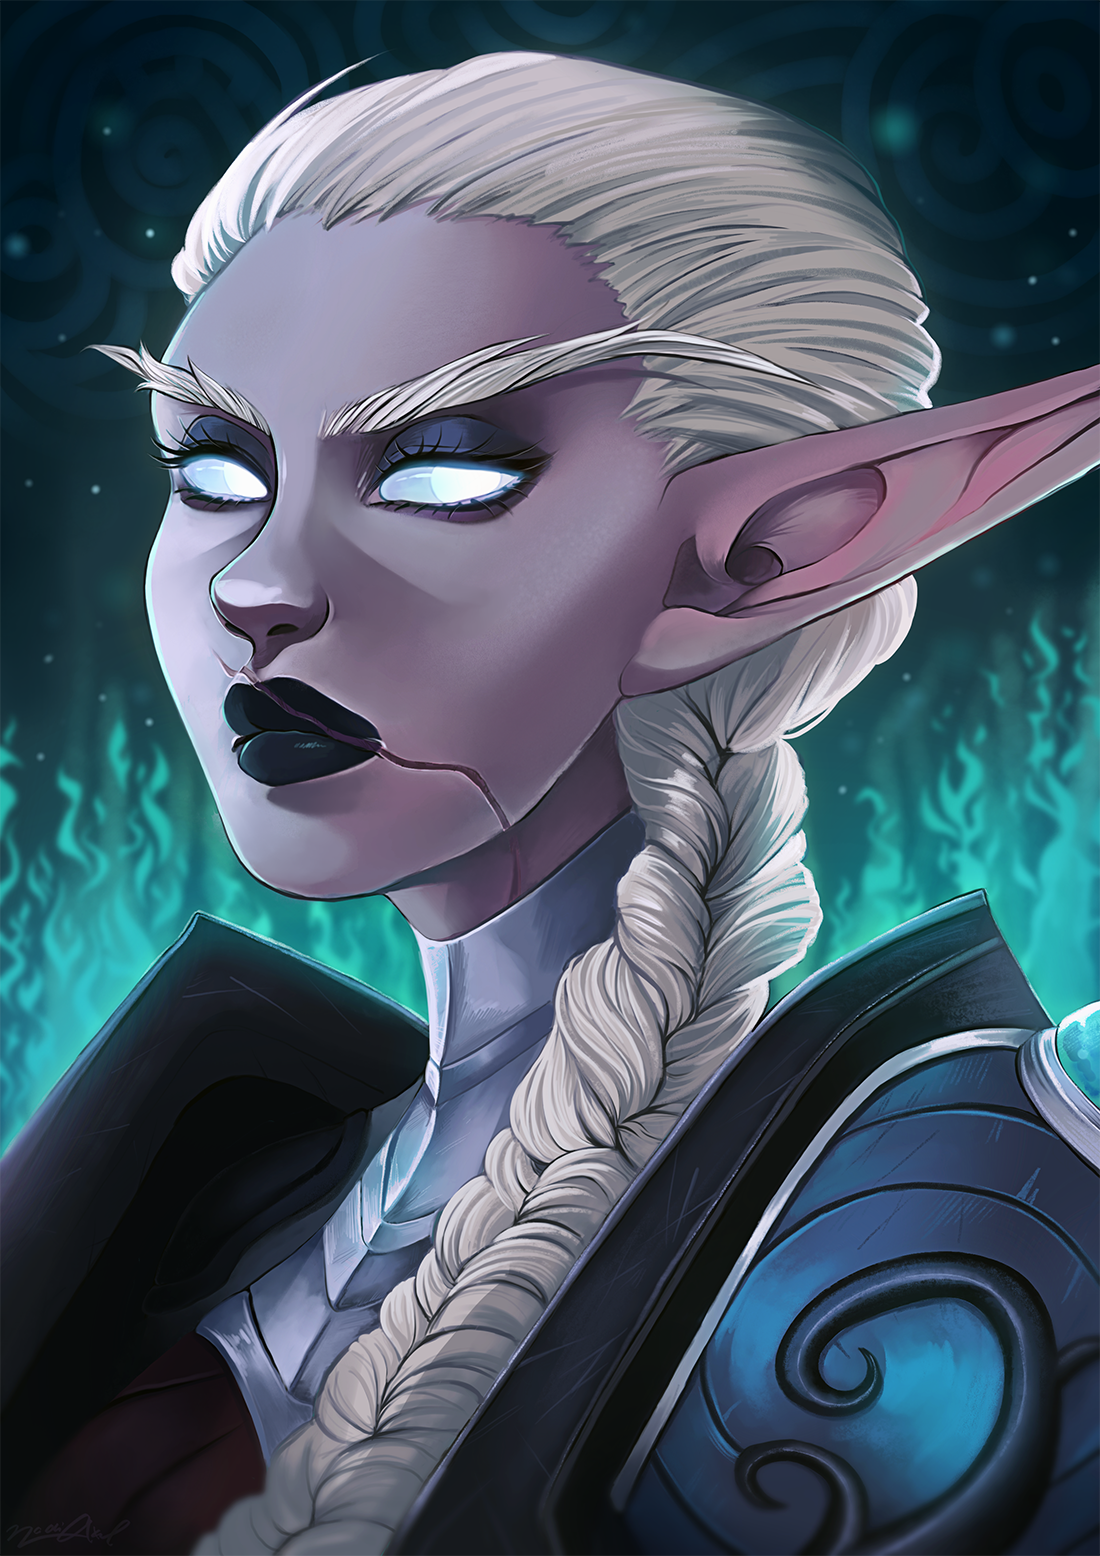 Miras_Nightelf_-_Commission - web.png